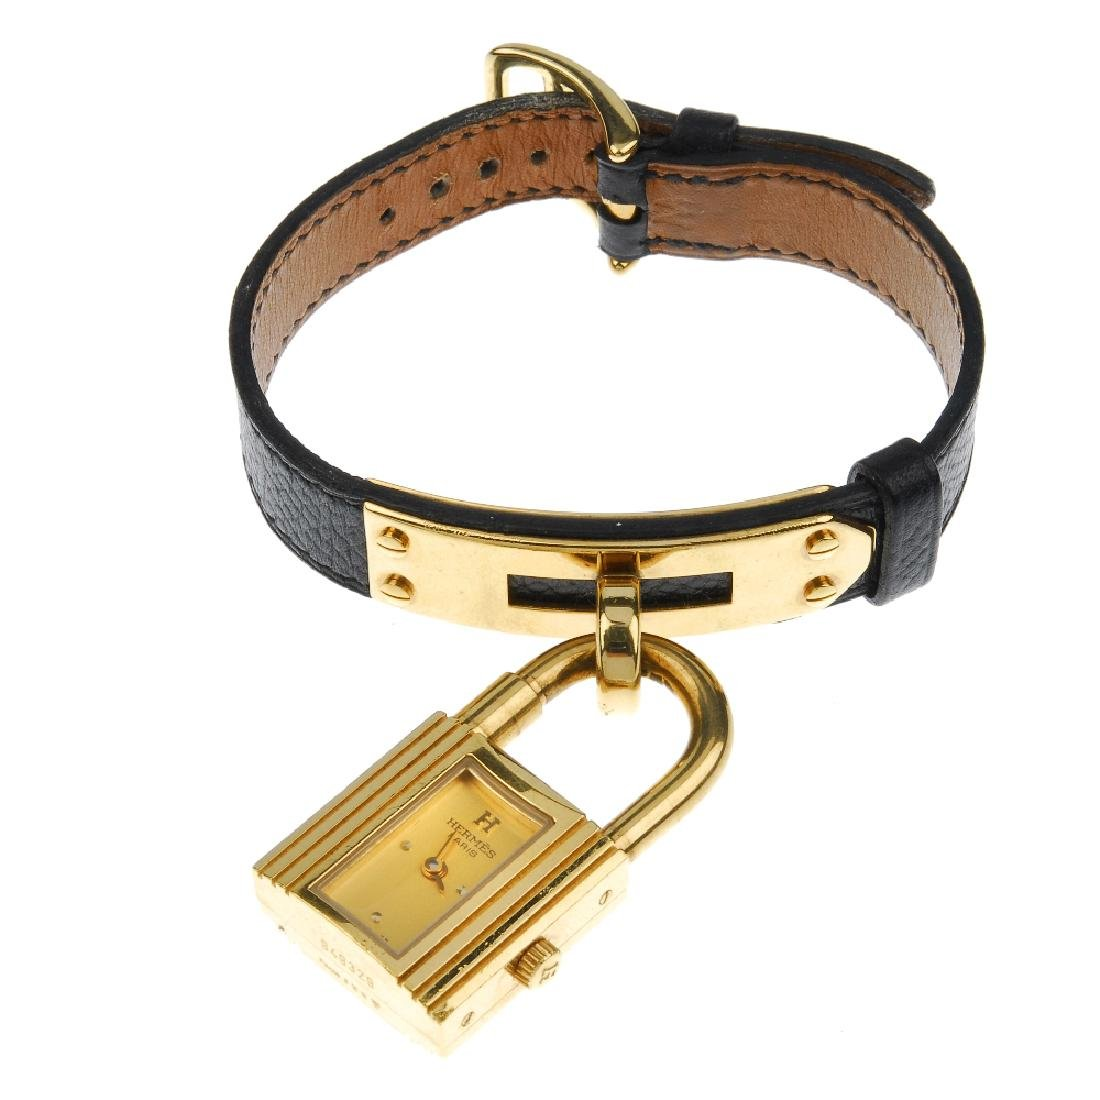 HERMÈS - a lady's Kelly wrist watch. The gold plated